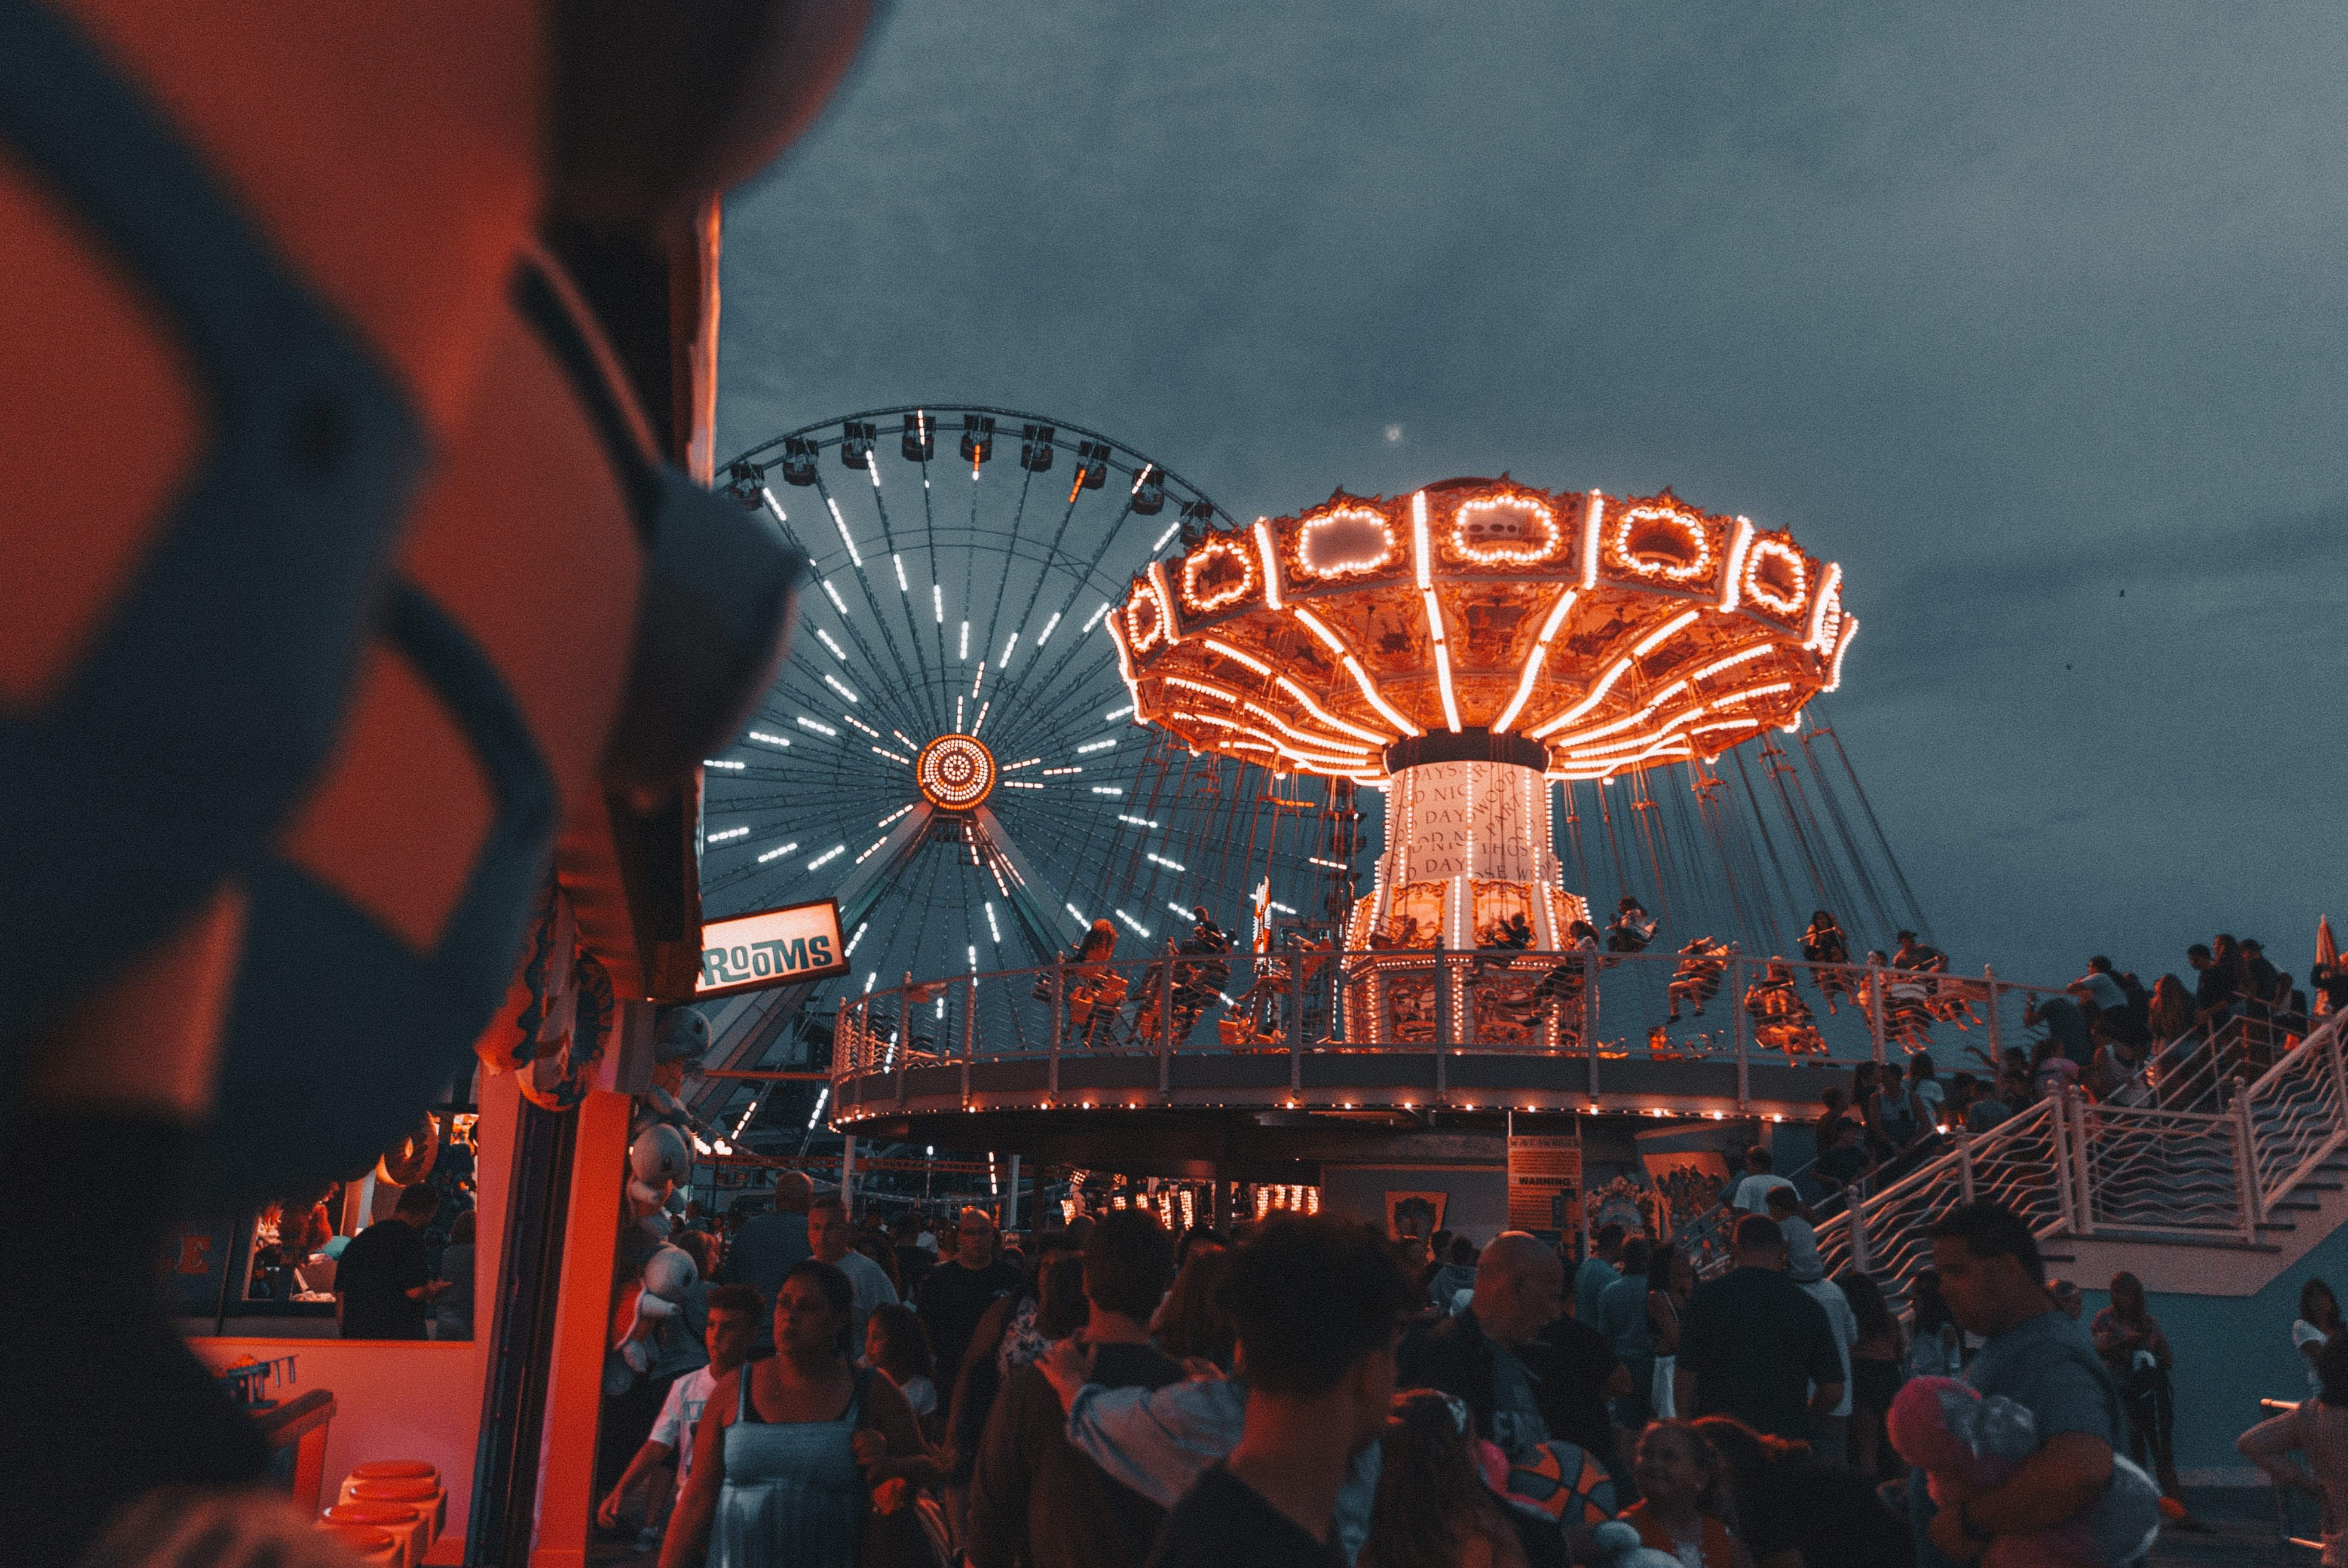 Crowd enjoying Wildwood boardwalk amusement park with swing ride and Ferris Wheel glowing in the night